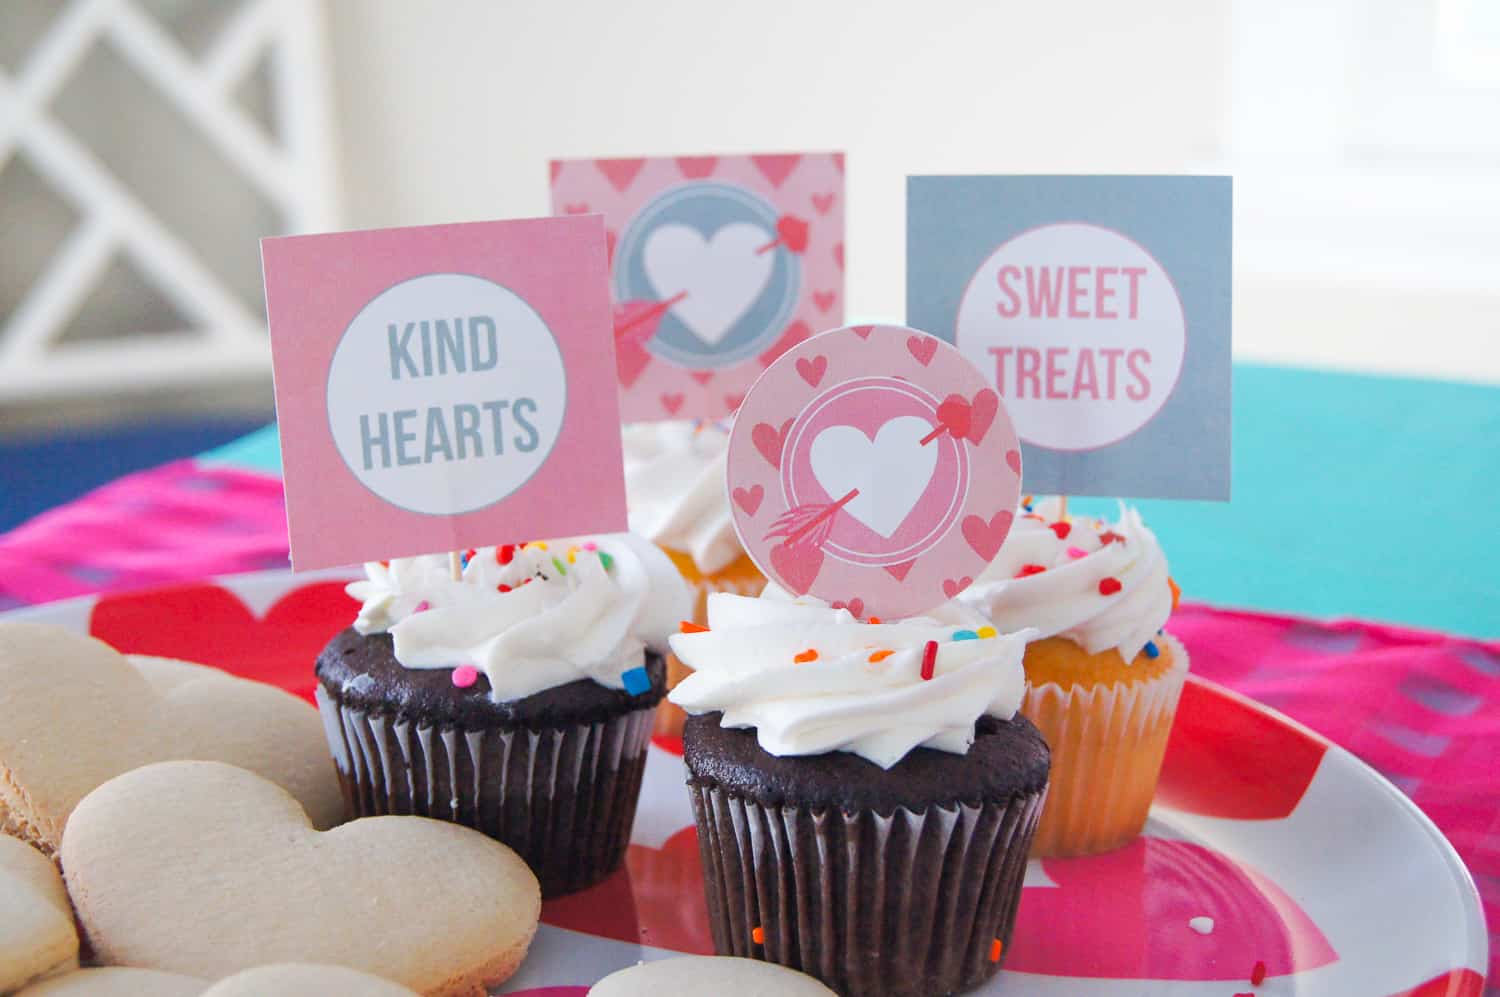 Valentine's Day Play Date: Sweet Treats, Kind Hearts